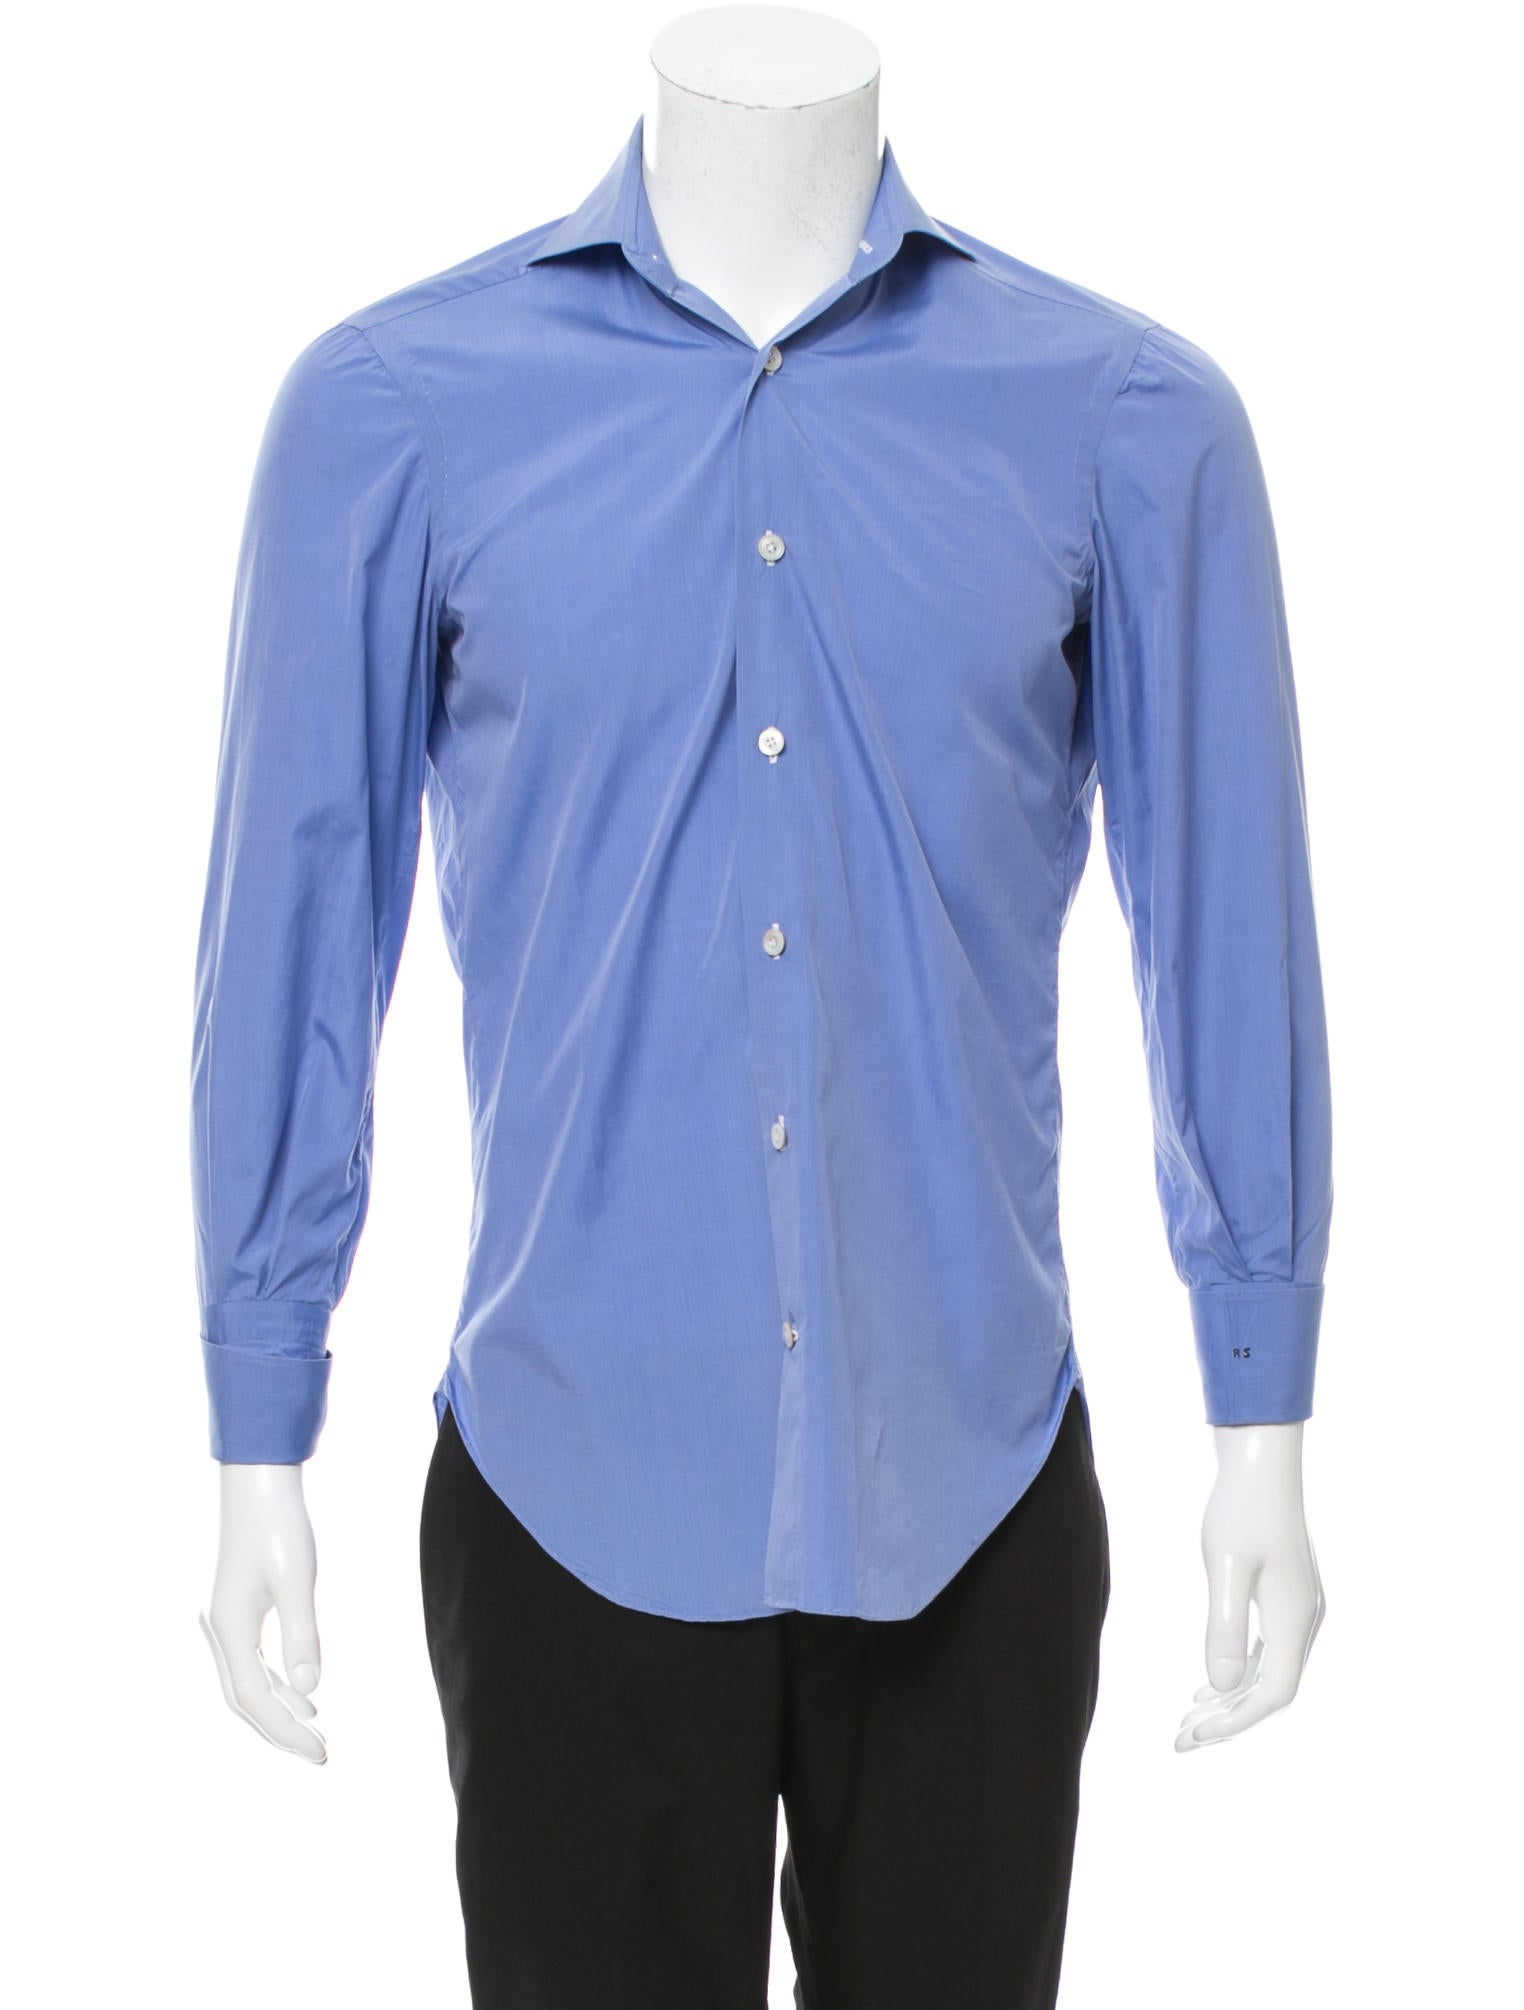 Casual & Dress Shirts Harley-Davidson® Long Sleeve Performance Button Front Shirt, Black. VM. $ $ The lightweight shirts are terrific for warmer weather. We have smart looking cotton and cotton blends. We have long sleeves you can roll up, shirts fit for wearing tucked-in, and shirts that can be worn untucked.